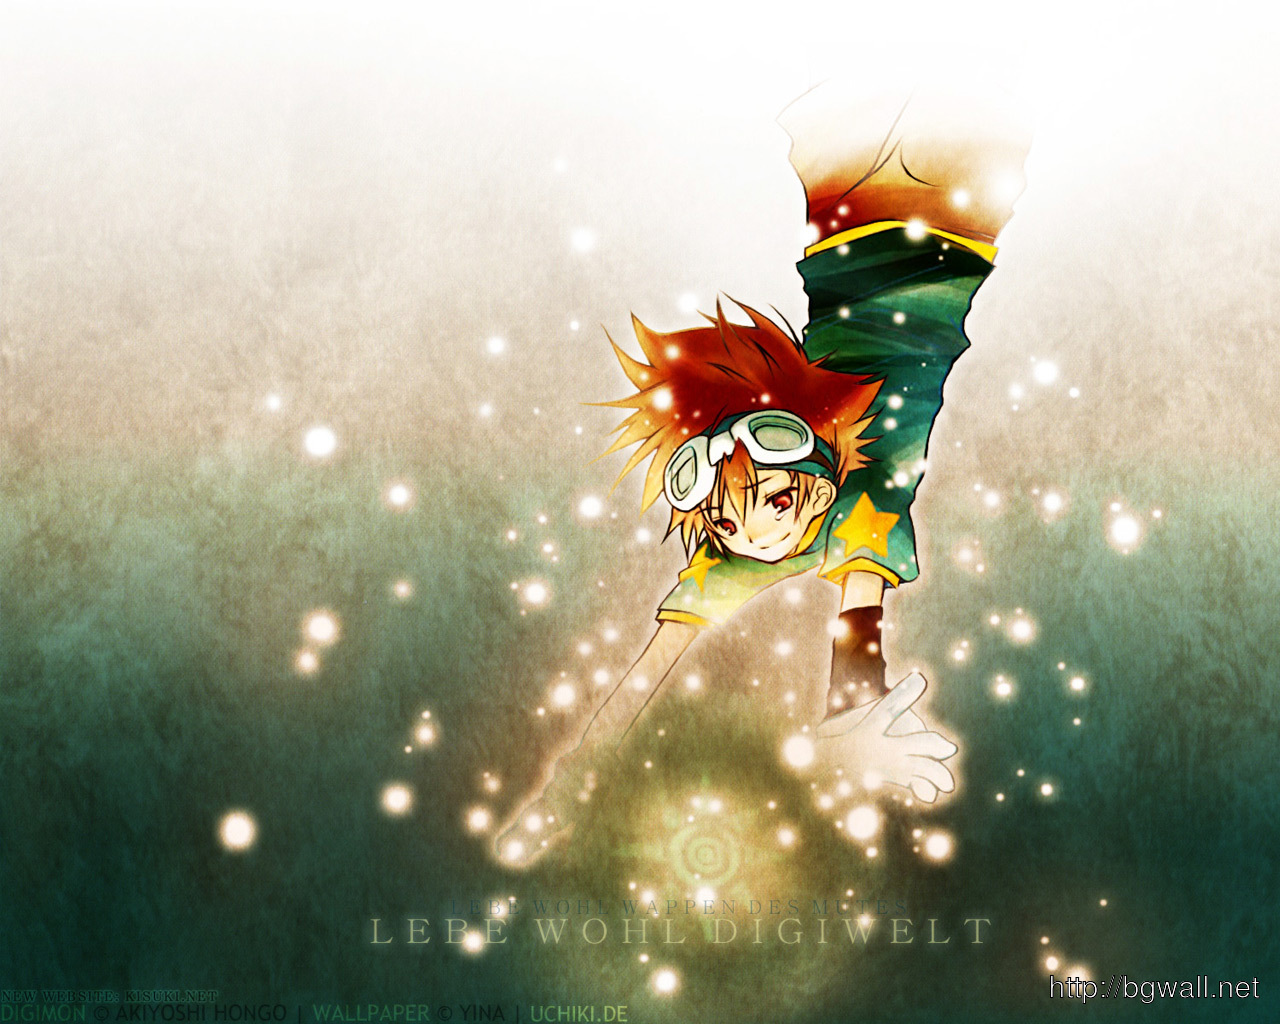 Anime Wallpapers Digimon Lebewohl Digiwelt 1280 X 1024 Full Size